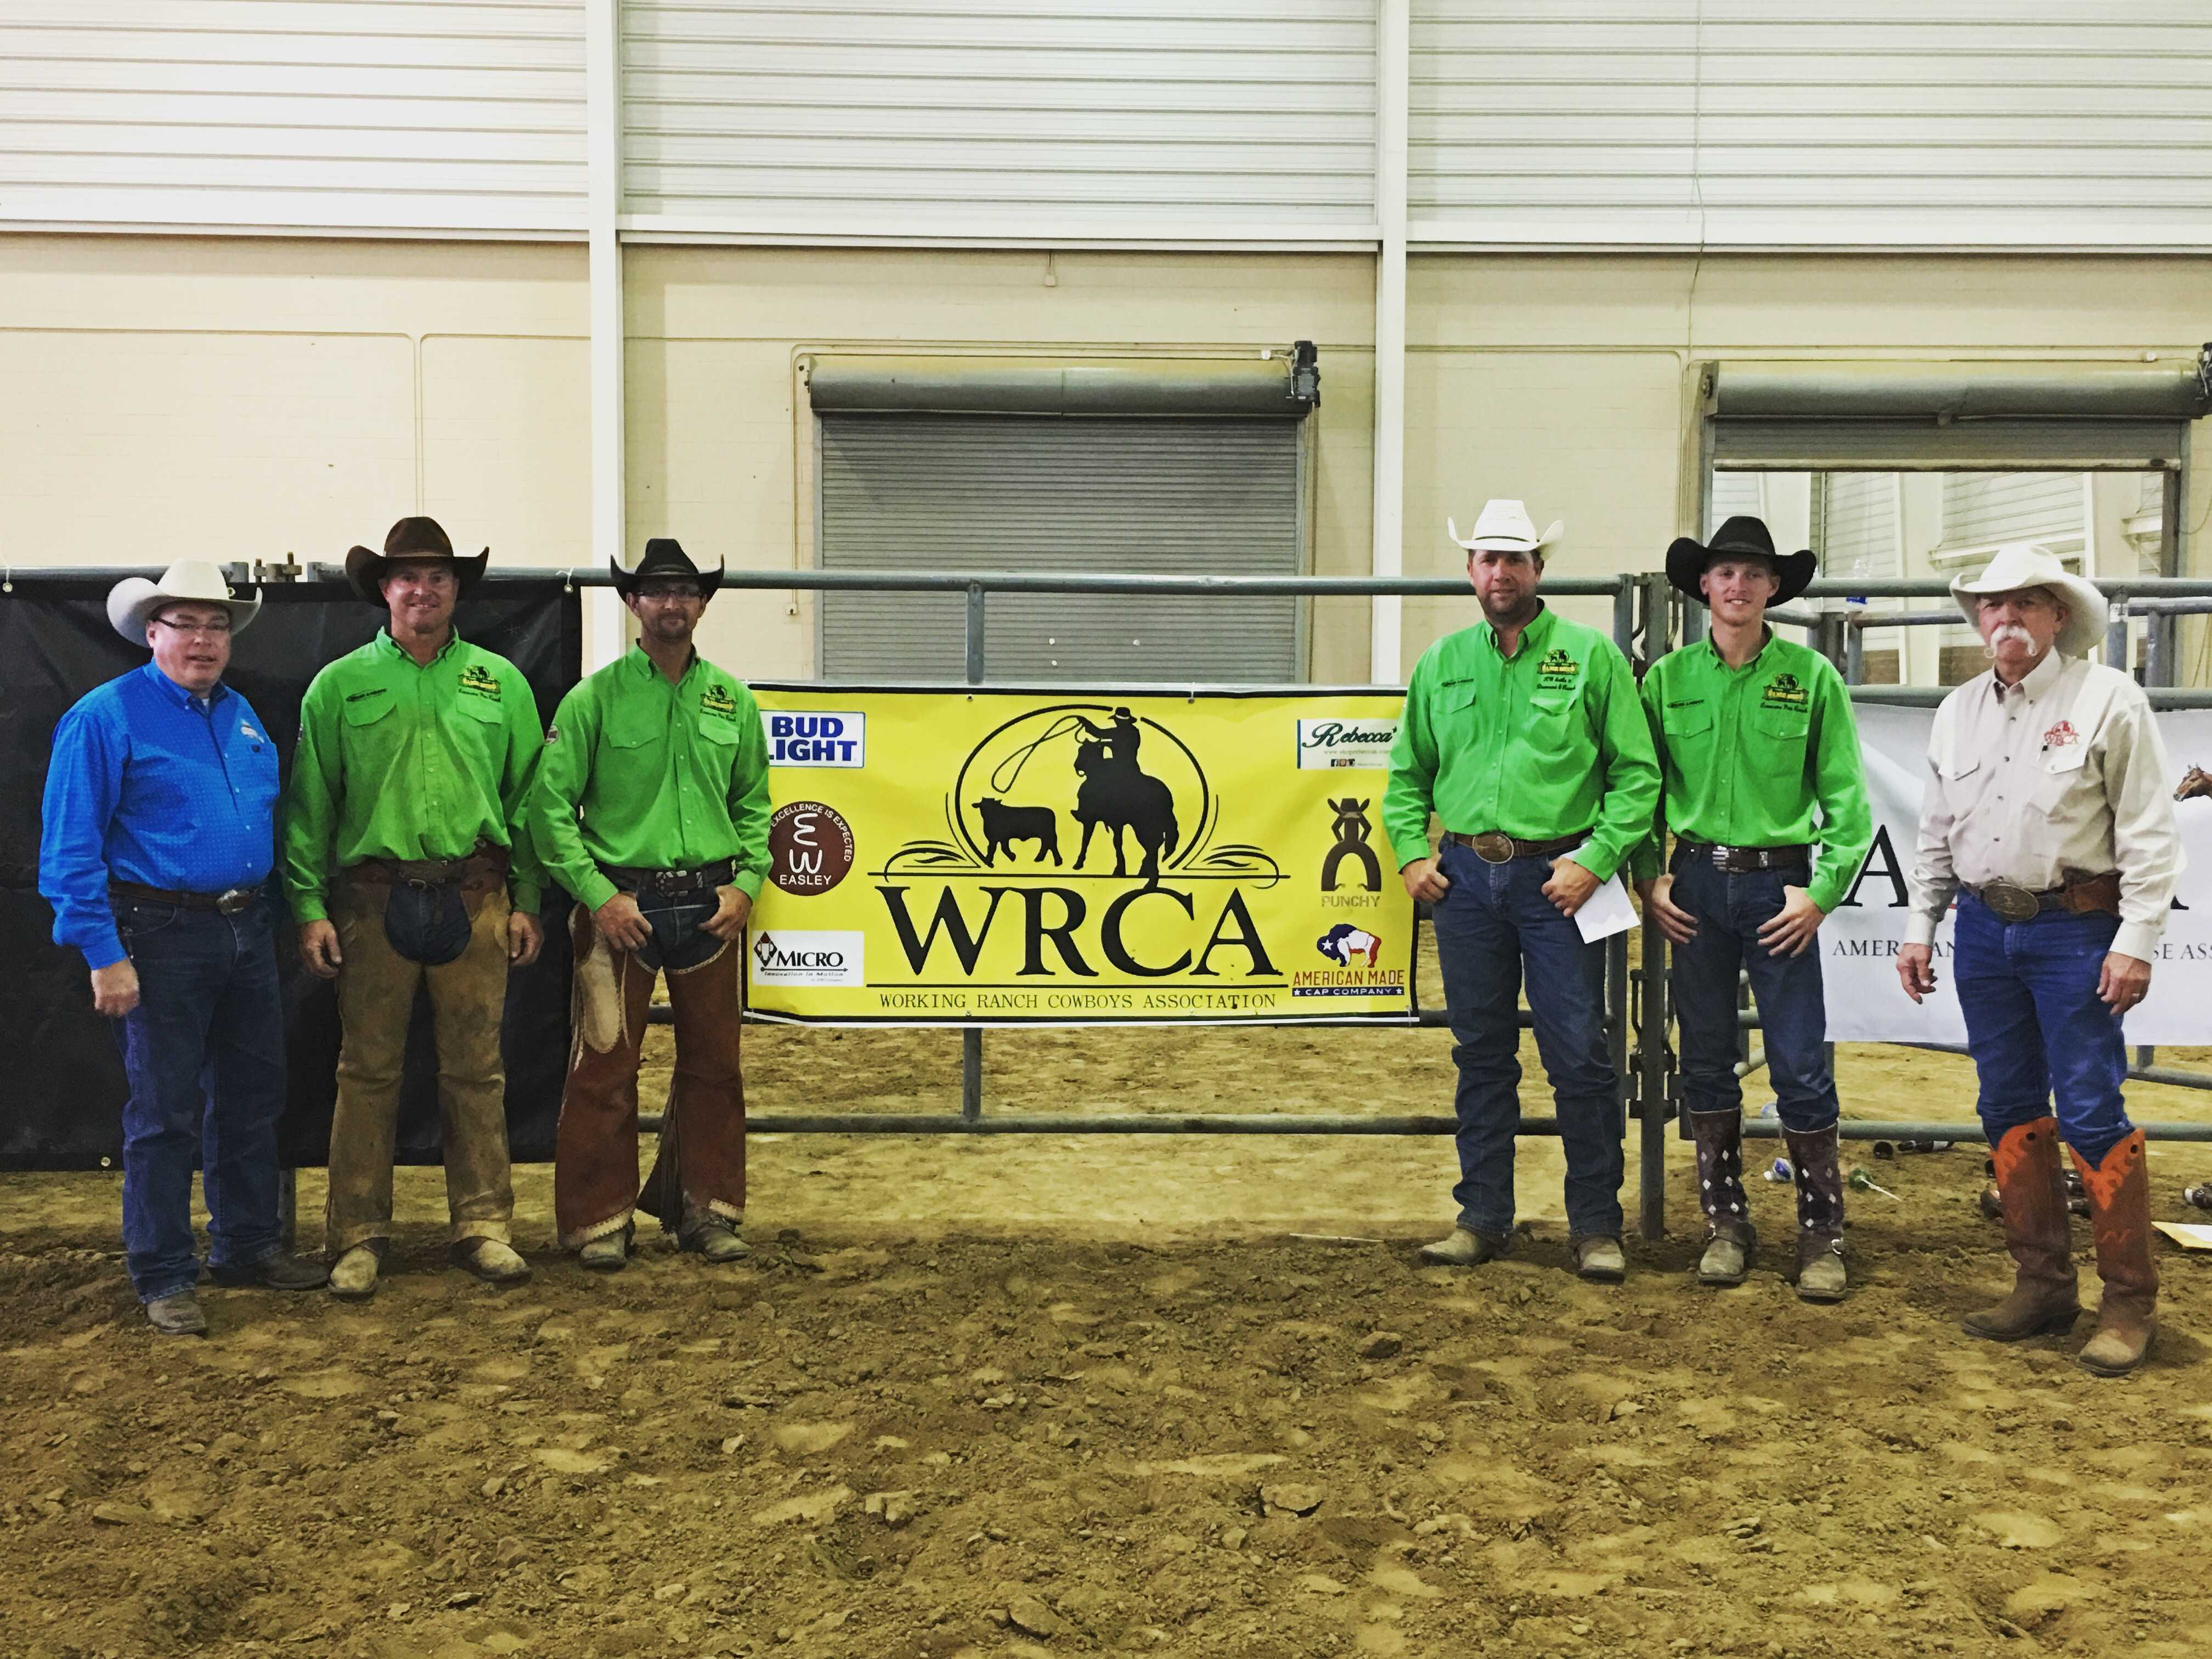 2016 Rockn Western Rendezvous Winning Ranch Team - Lonesome Pine Ranch